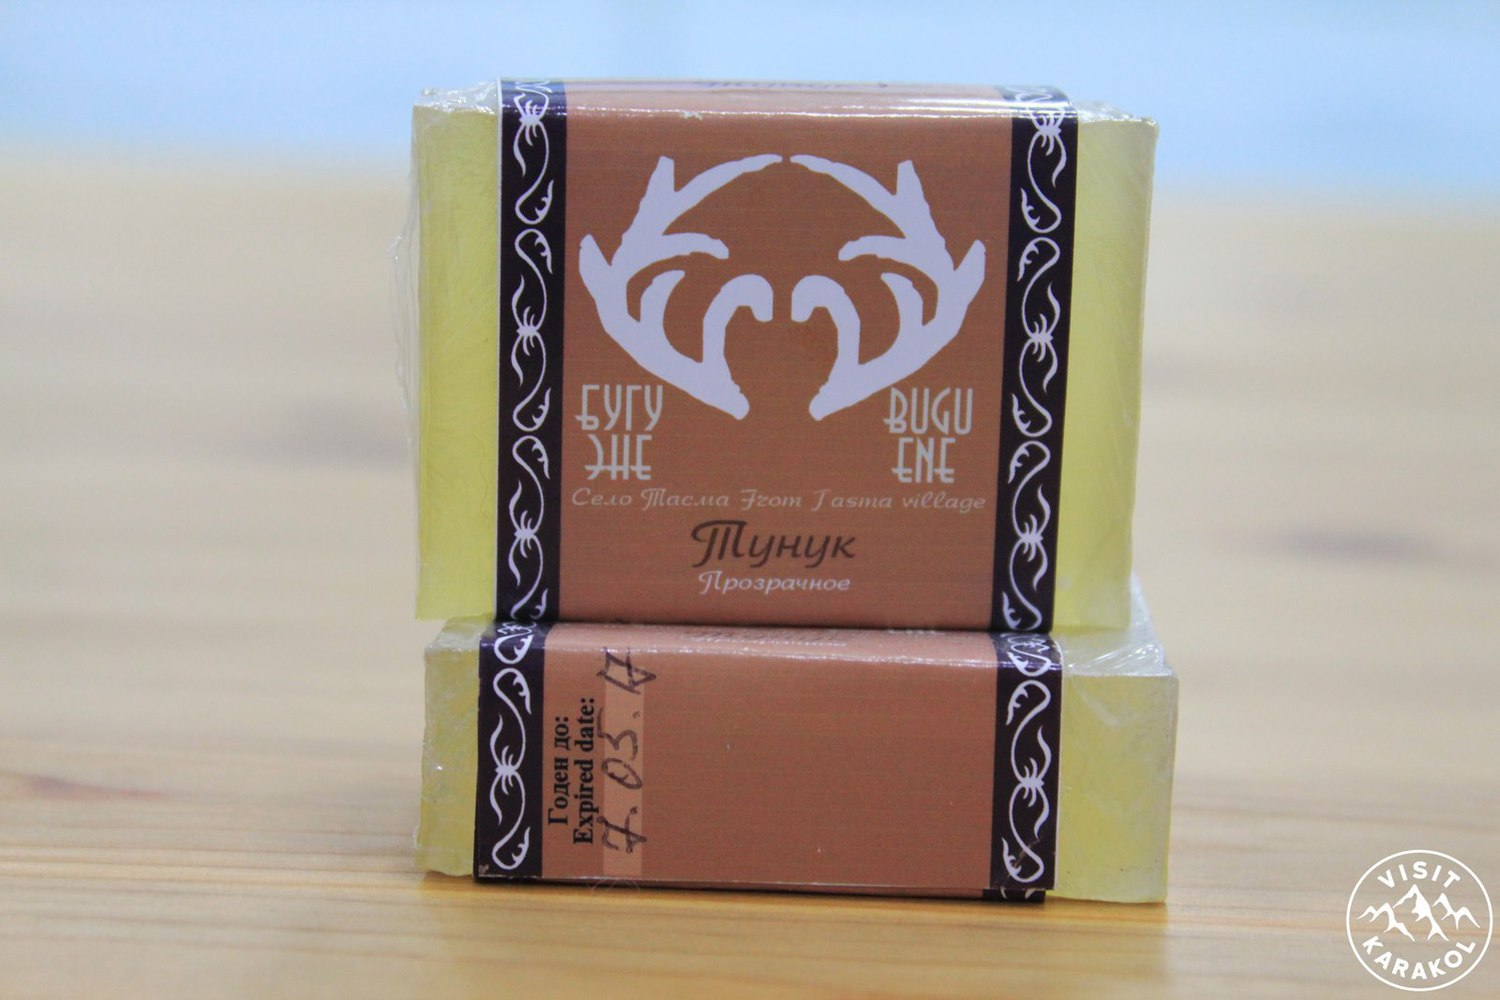 Soap from glycerin